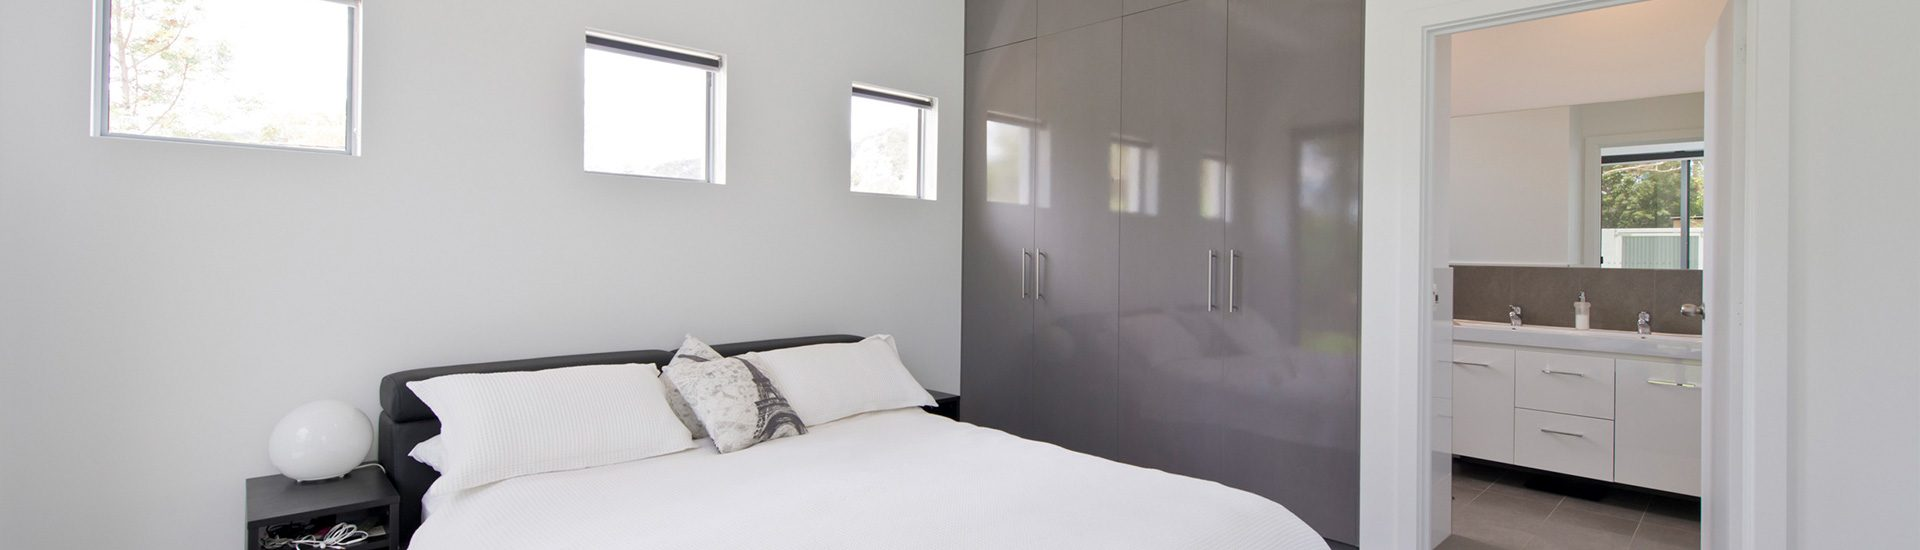 Kitchen Designers South Australia | Wardrobe Manufacturers